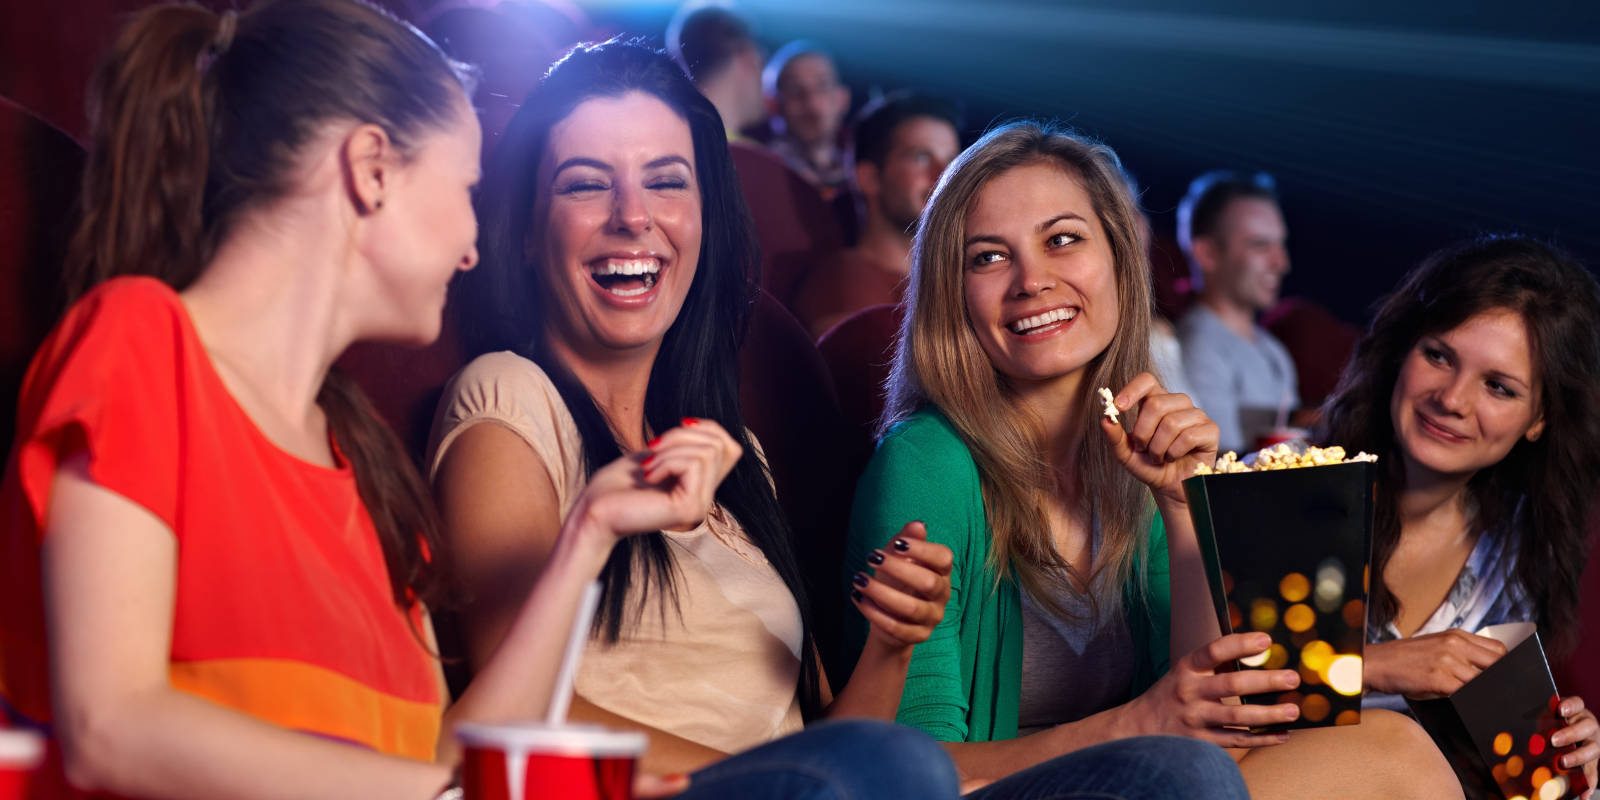 Group of women with popcorn and drinks in a cinema